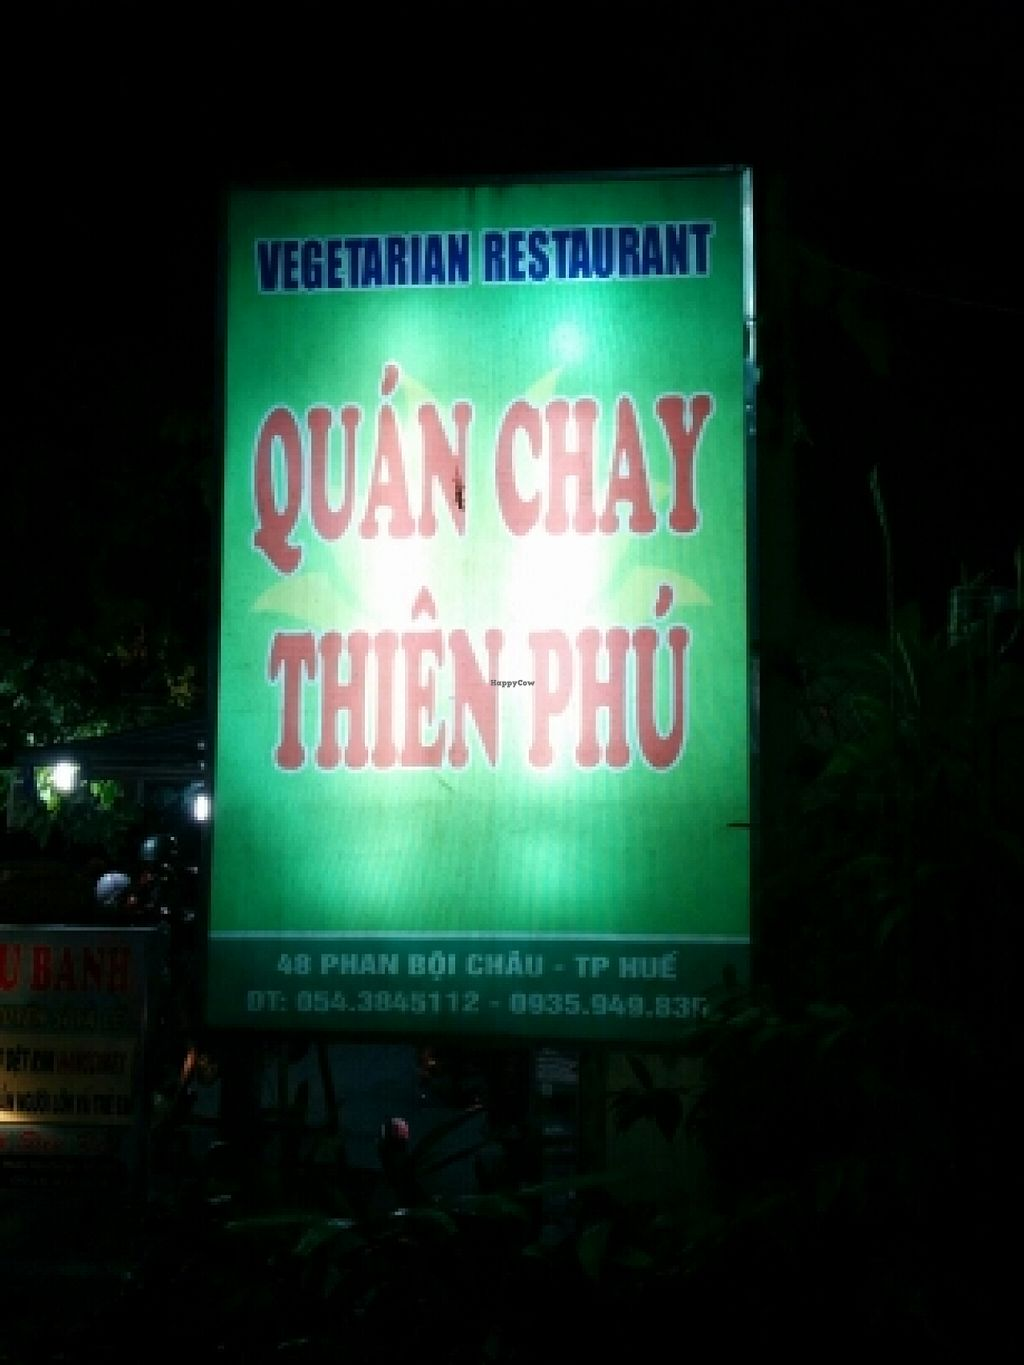 """Photo of Thien Phu  by <a href=""""/members/profile/VegTraveller"""">VegTraveller</a> <br/>Sign <br/> October 20, 2015  - <a href='/contact/abuse/image/55660/121926'>Report</a>"""